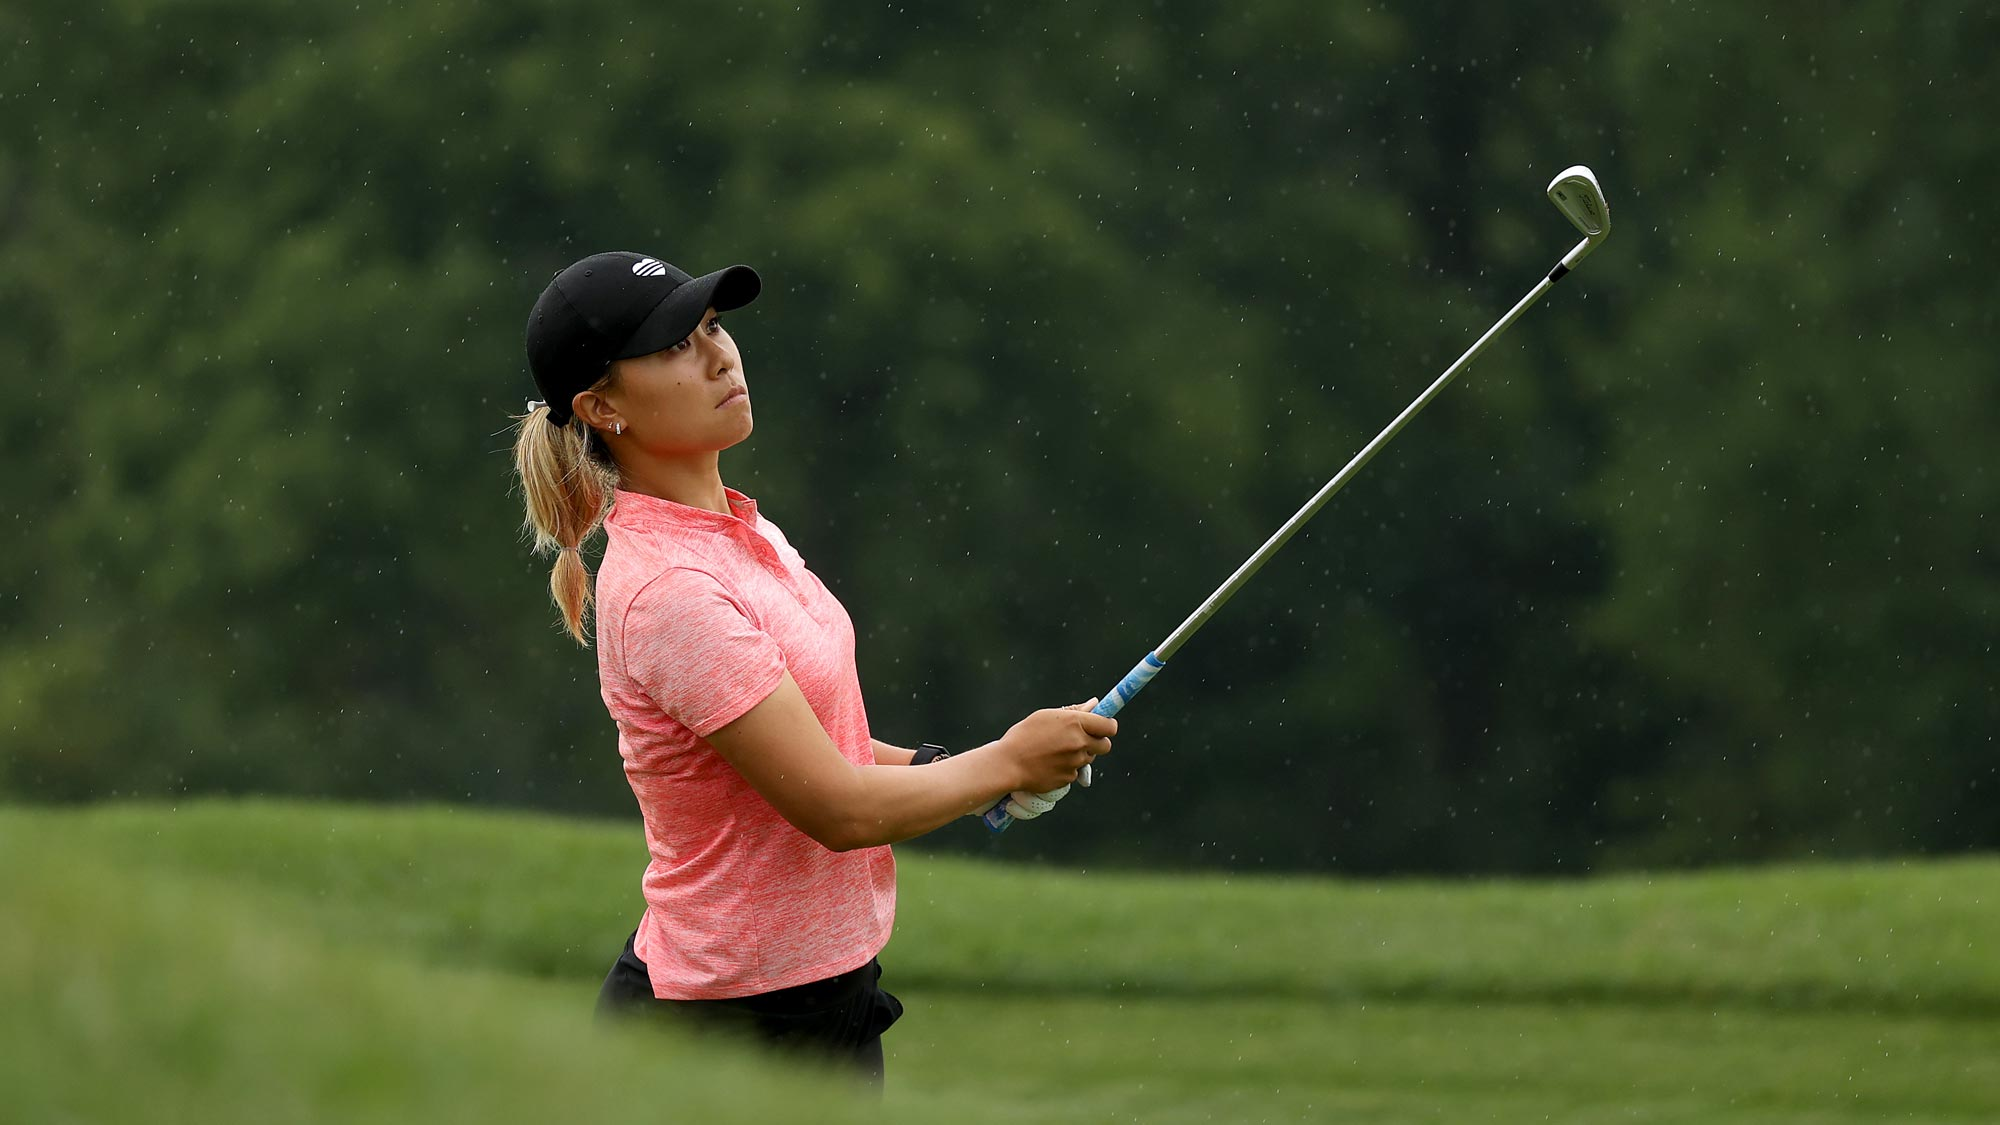 Danielle Kang plays her shot on the sixth hole during the second round of the LPGA Drive On Championship